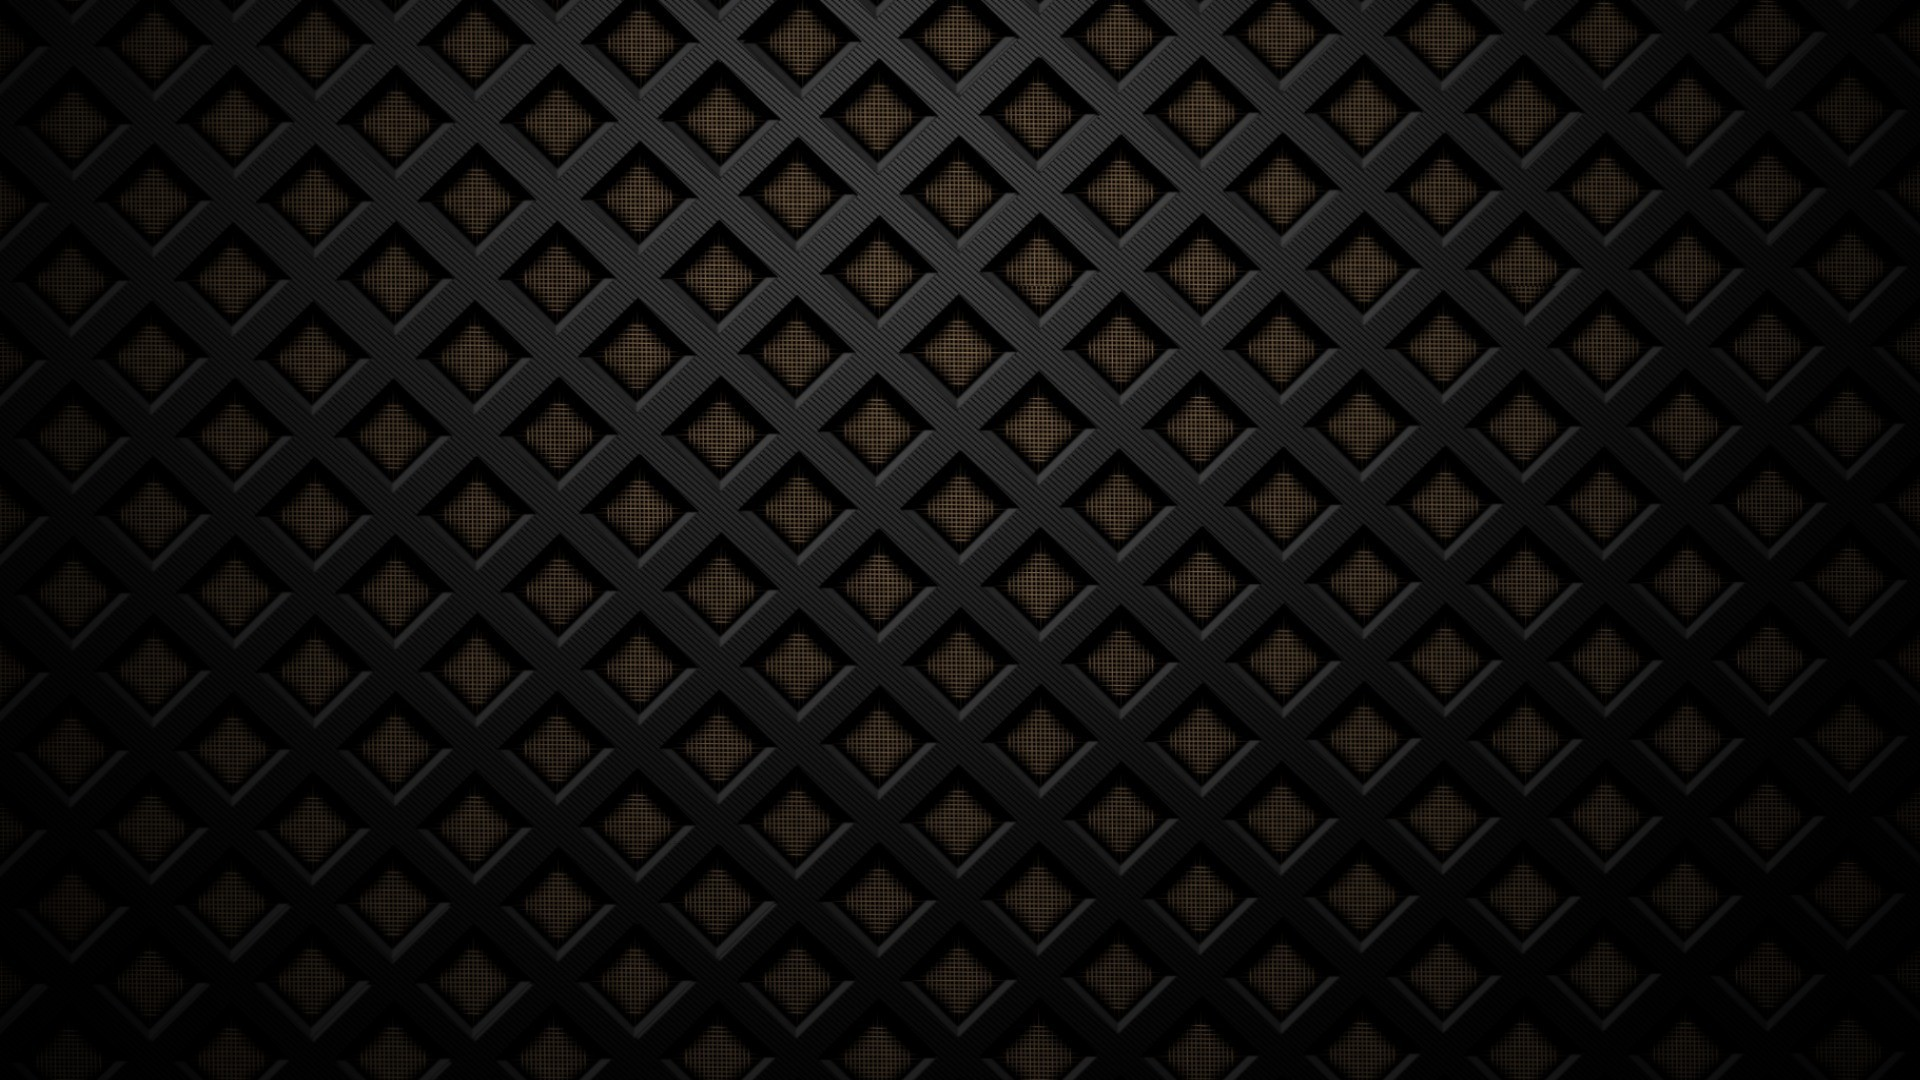 1920x1080 Black-Texture-Wallpapers-Pc.jpg (1920×1080) | Textures for Edits | Pinterest